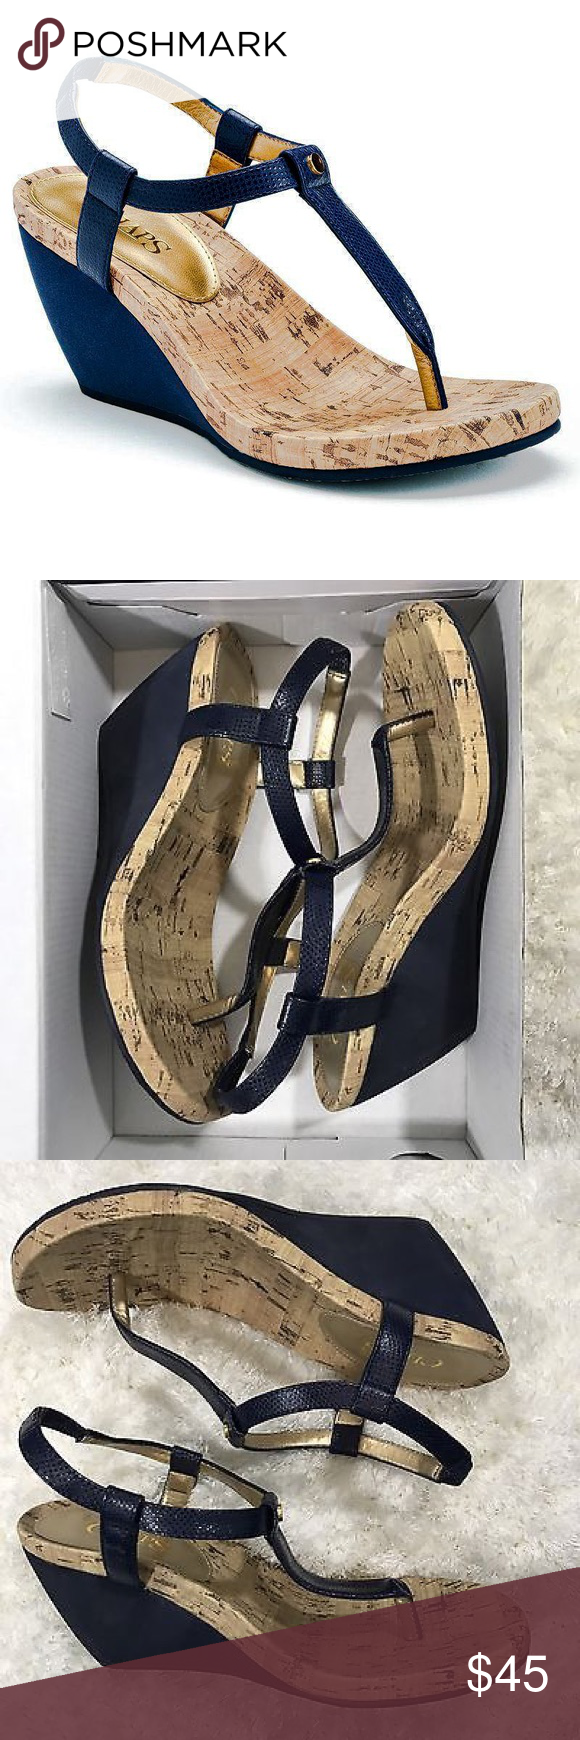 ab29fce9035 CHAPS NAVY BLUE THONG WEDGE SANDALS Hello I m Laura it s lovely to meet  you! Stop by my closet any time if you have any questions! Please follow me  and like ...